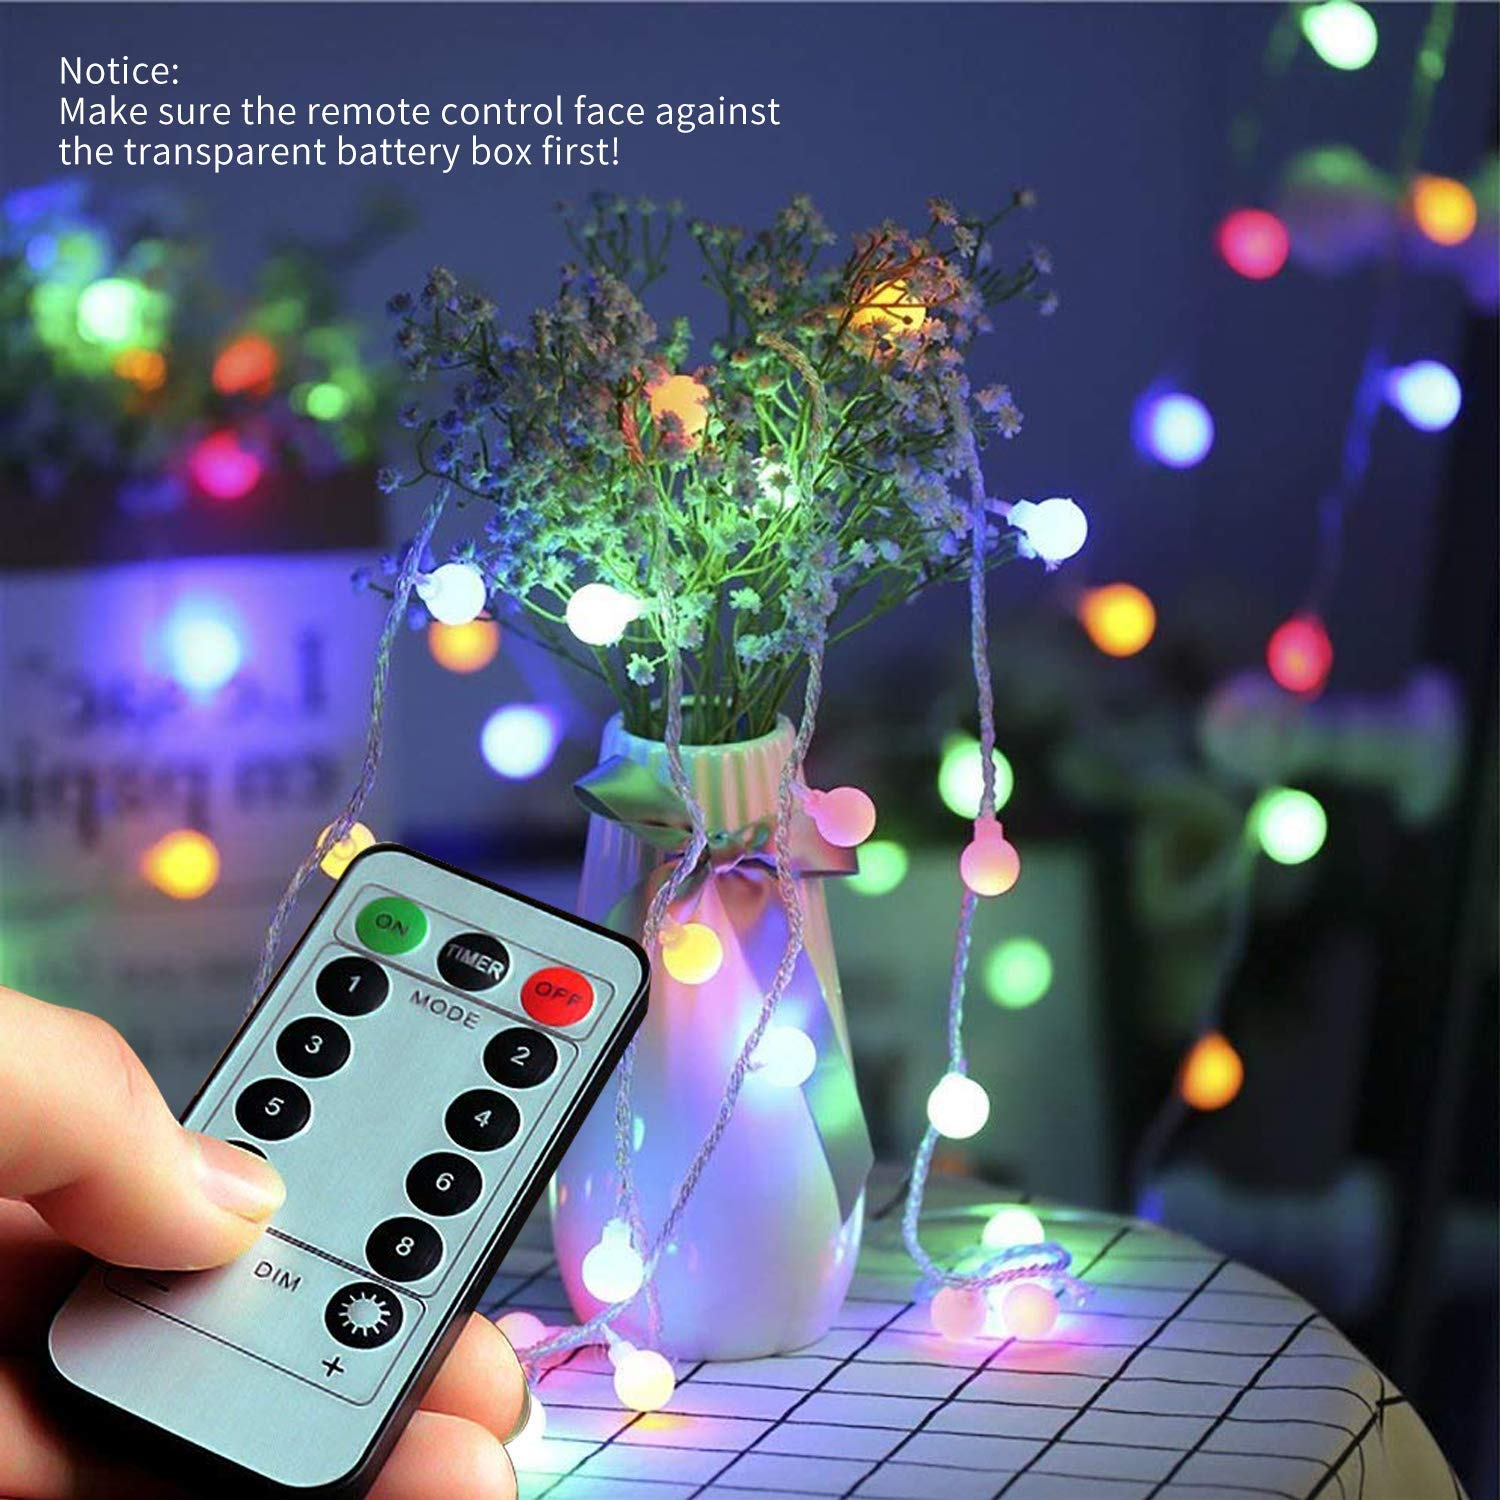 [Remote Control] 50 LED 5m Globe Fairy Light, Waterproof Battery Powered Starry String Decorative Ball Lights, with 8 Function Modes for Camping,Garden, Home, Wedding, Christmas Party(Multi Color)